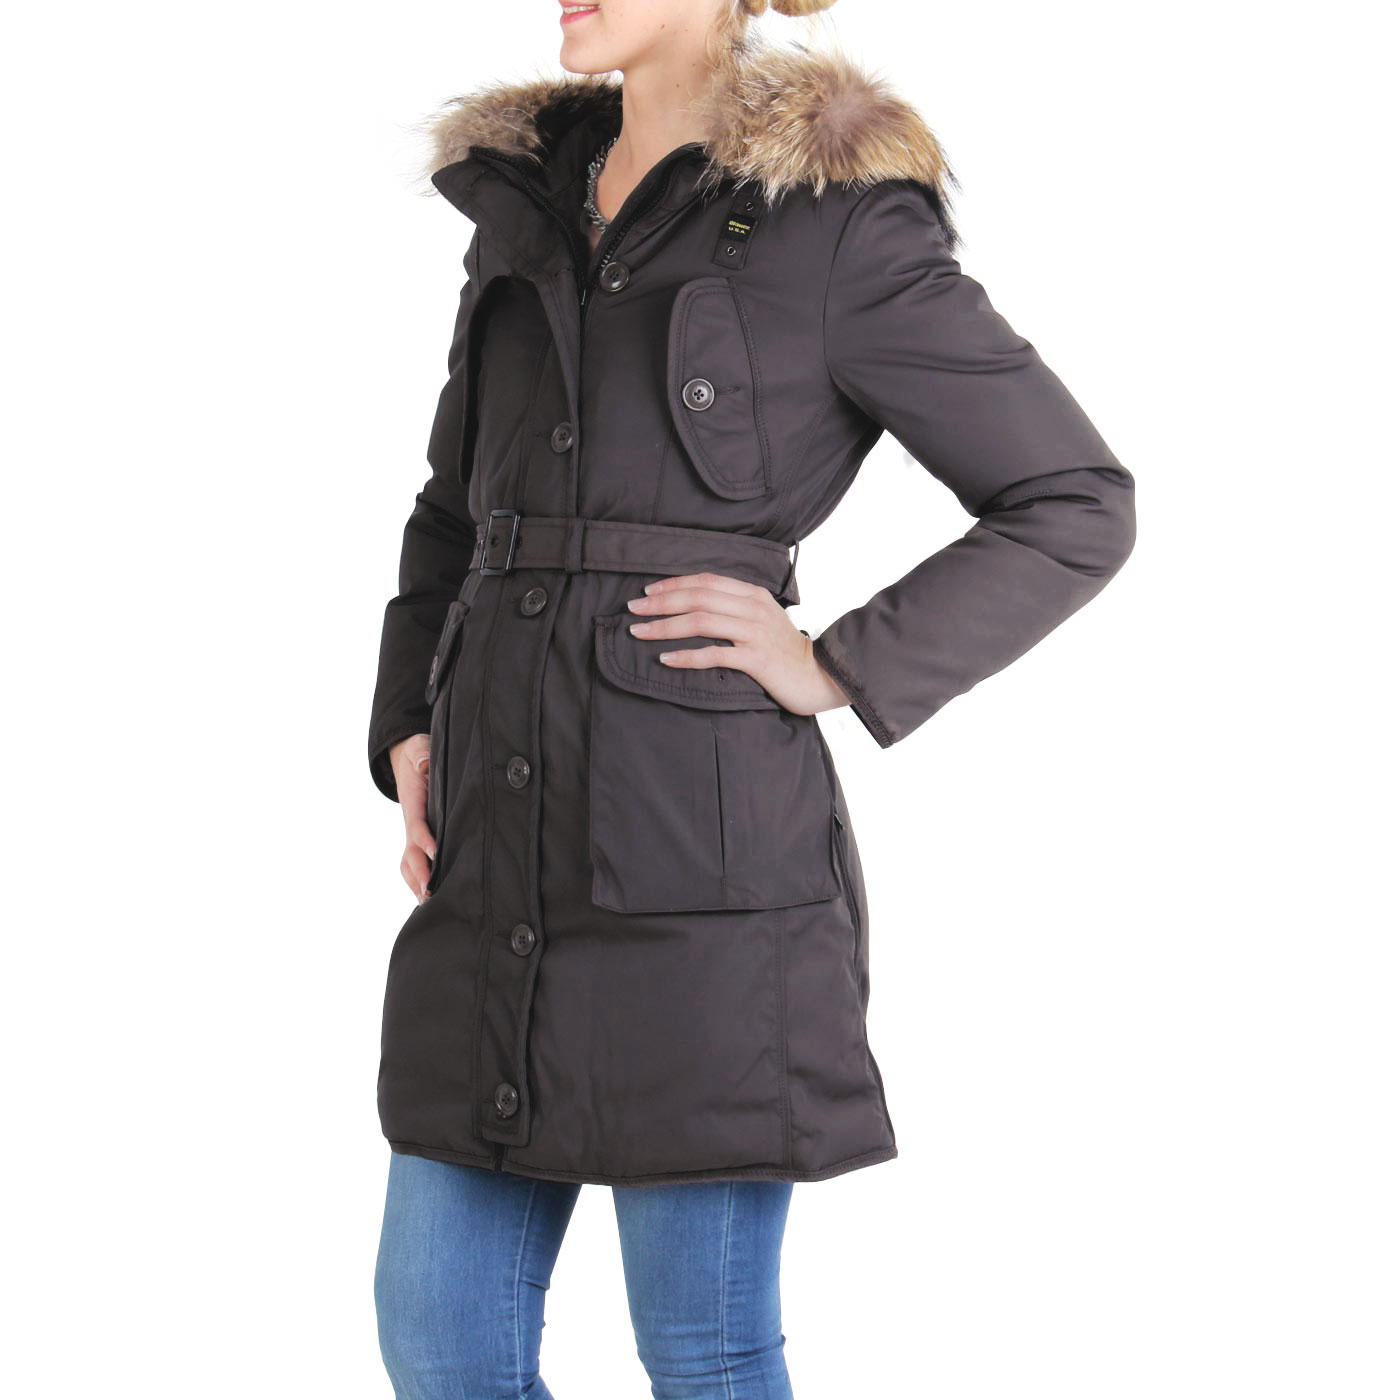 blauer usa damen winter daunen parka mantel jacke black. Black Bedroom Furniture Sets. Home Design Ideas